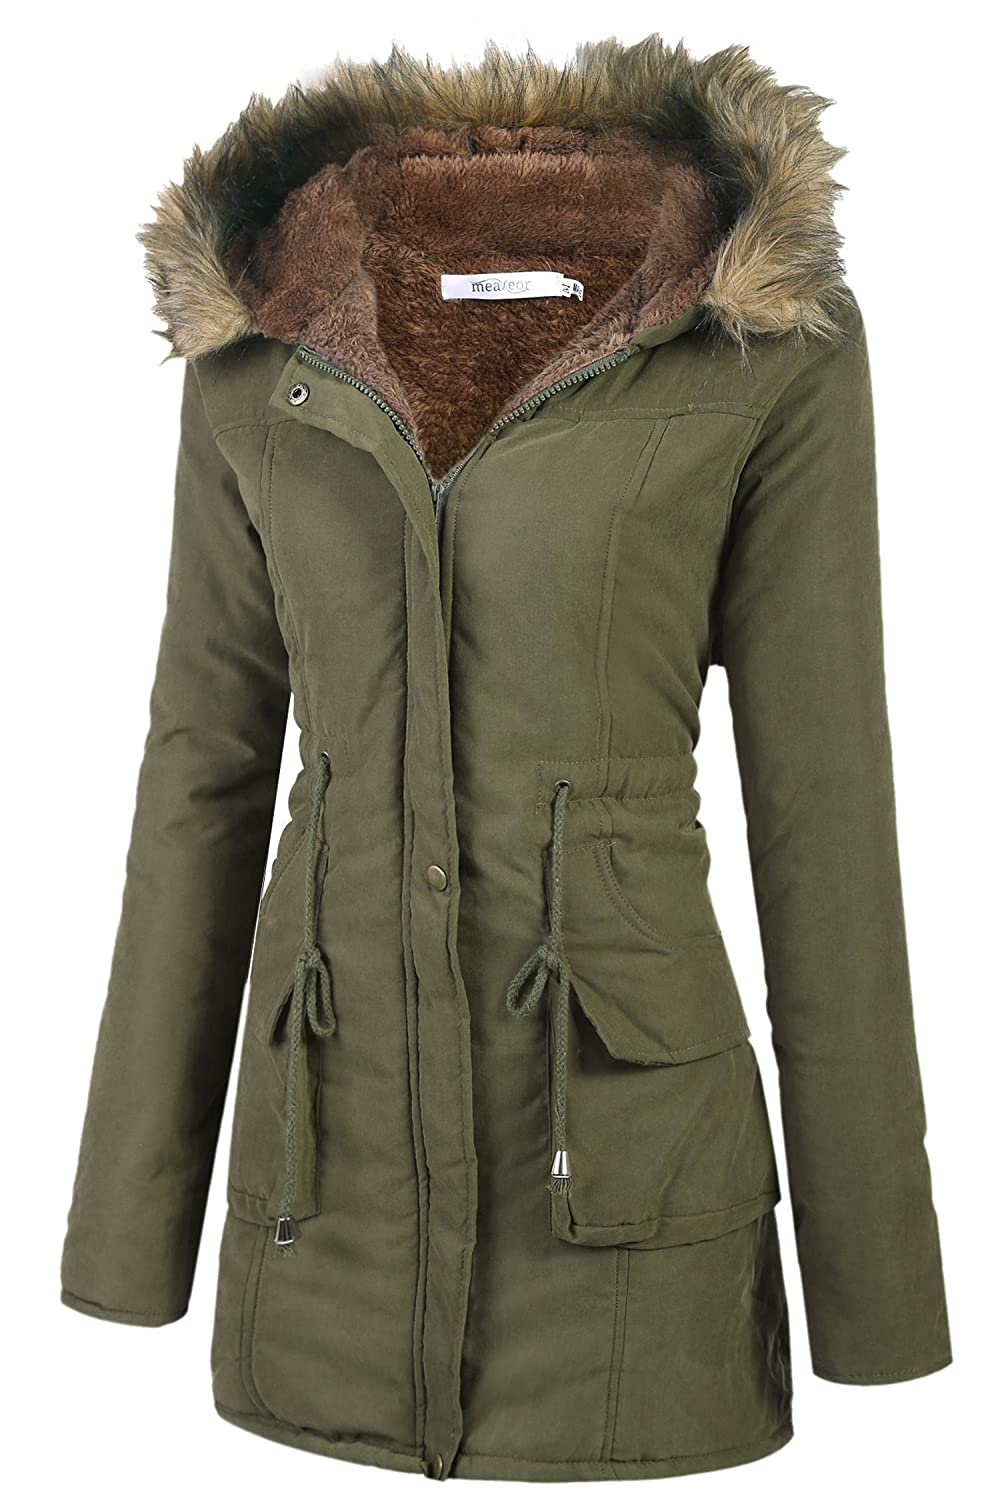 cab1ab474 Meaneor Womens Hooded Warm Winter Faux Fur Lined Parkas Long Coats